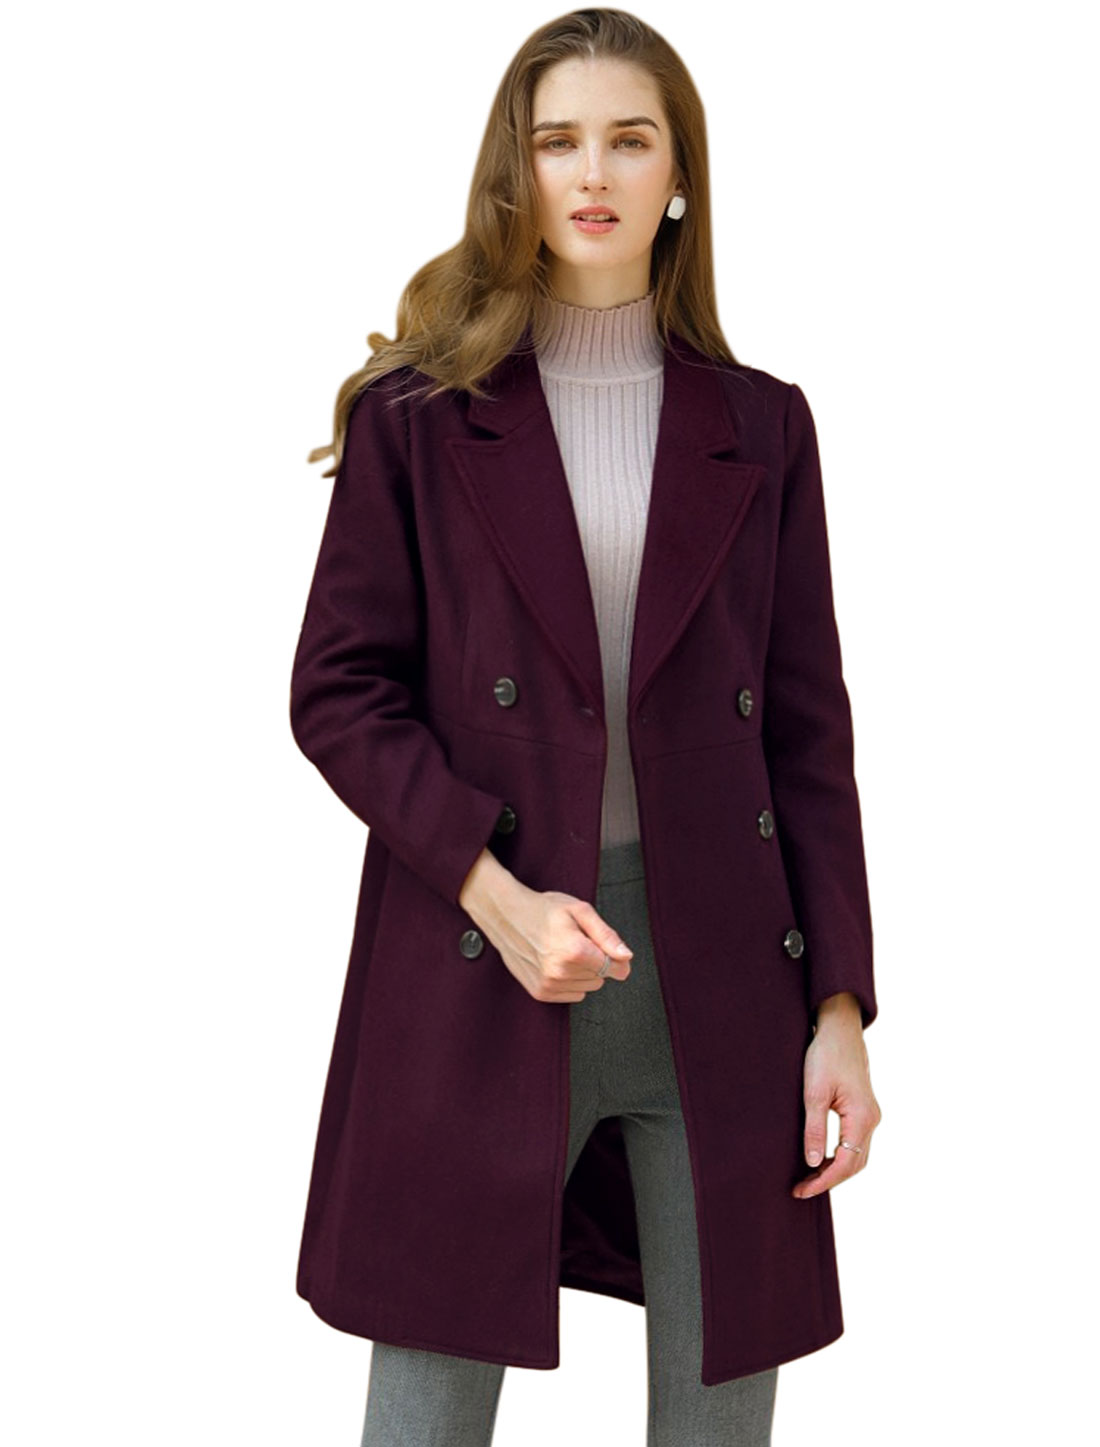 Women's Double Breasted Notched Lapel Winter Long Trench Coat Burgundy XS